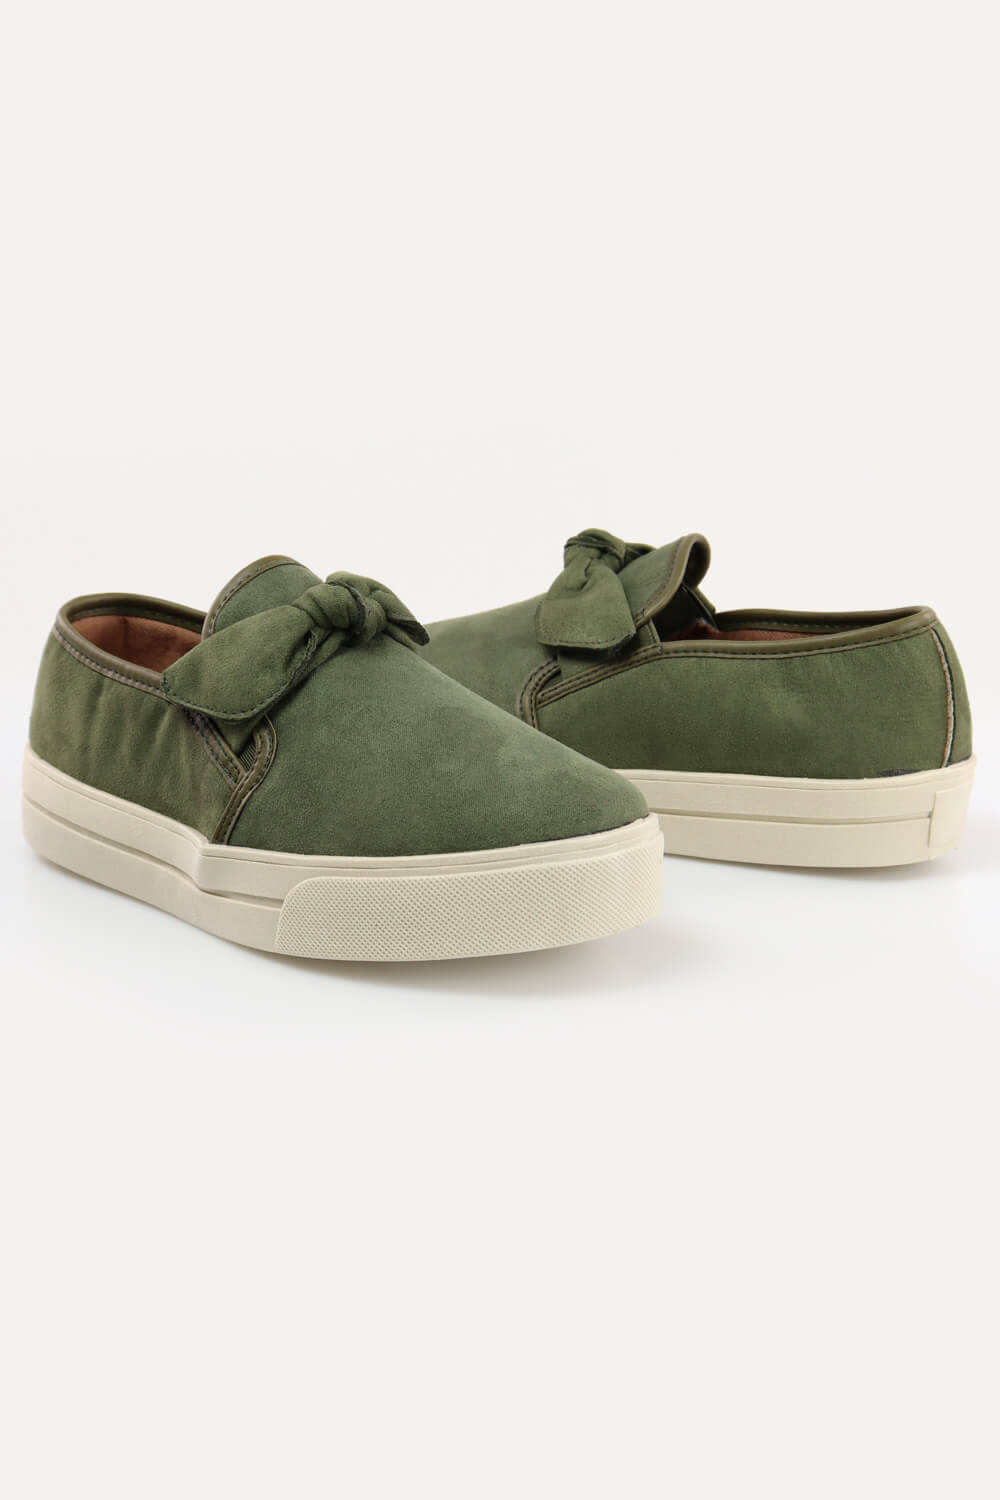 Slip On Chiquiteira Casual Laço Suede Army MKS